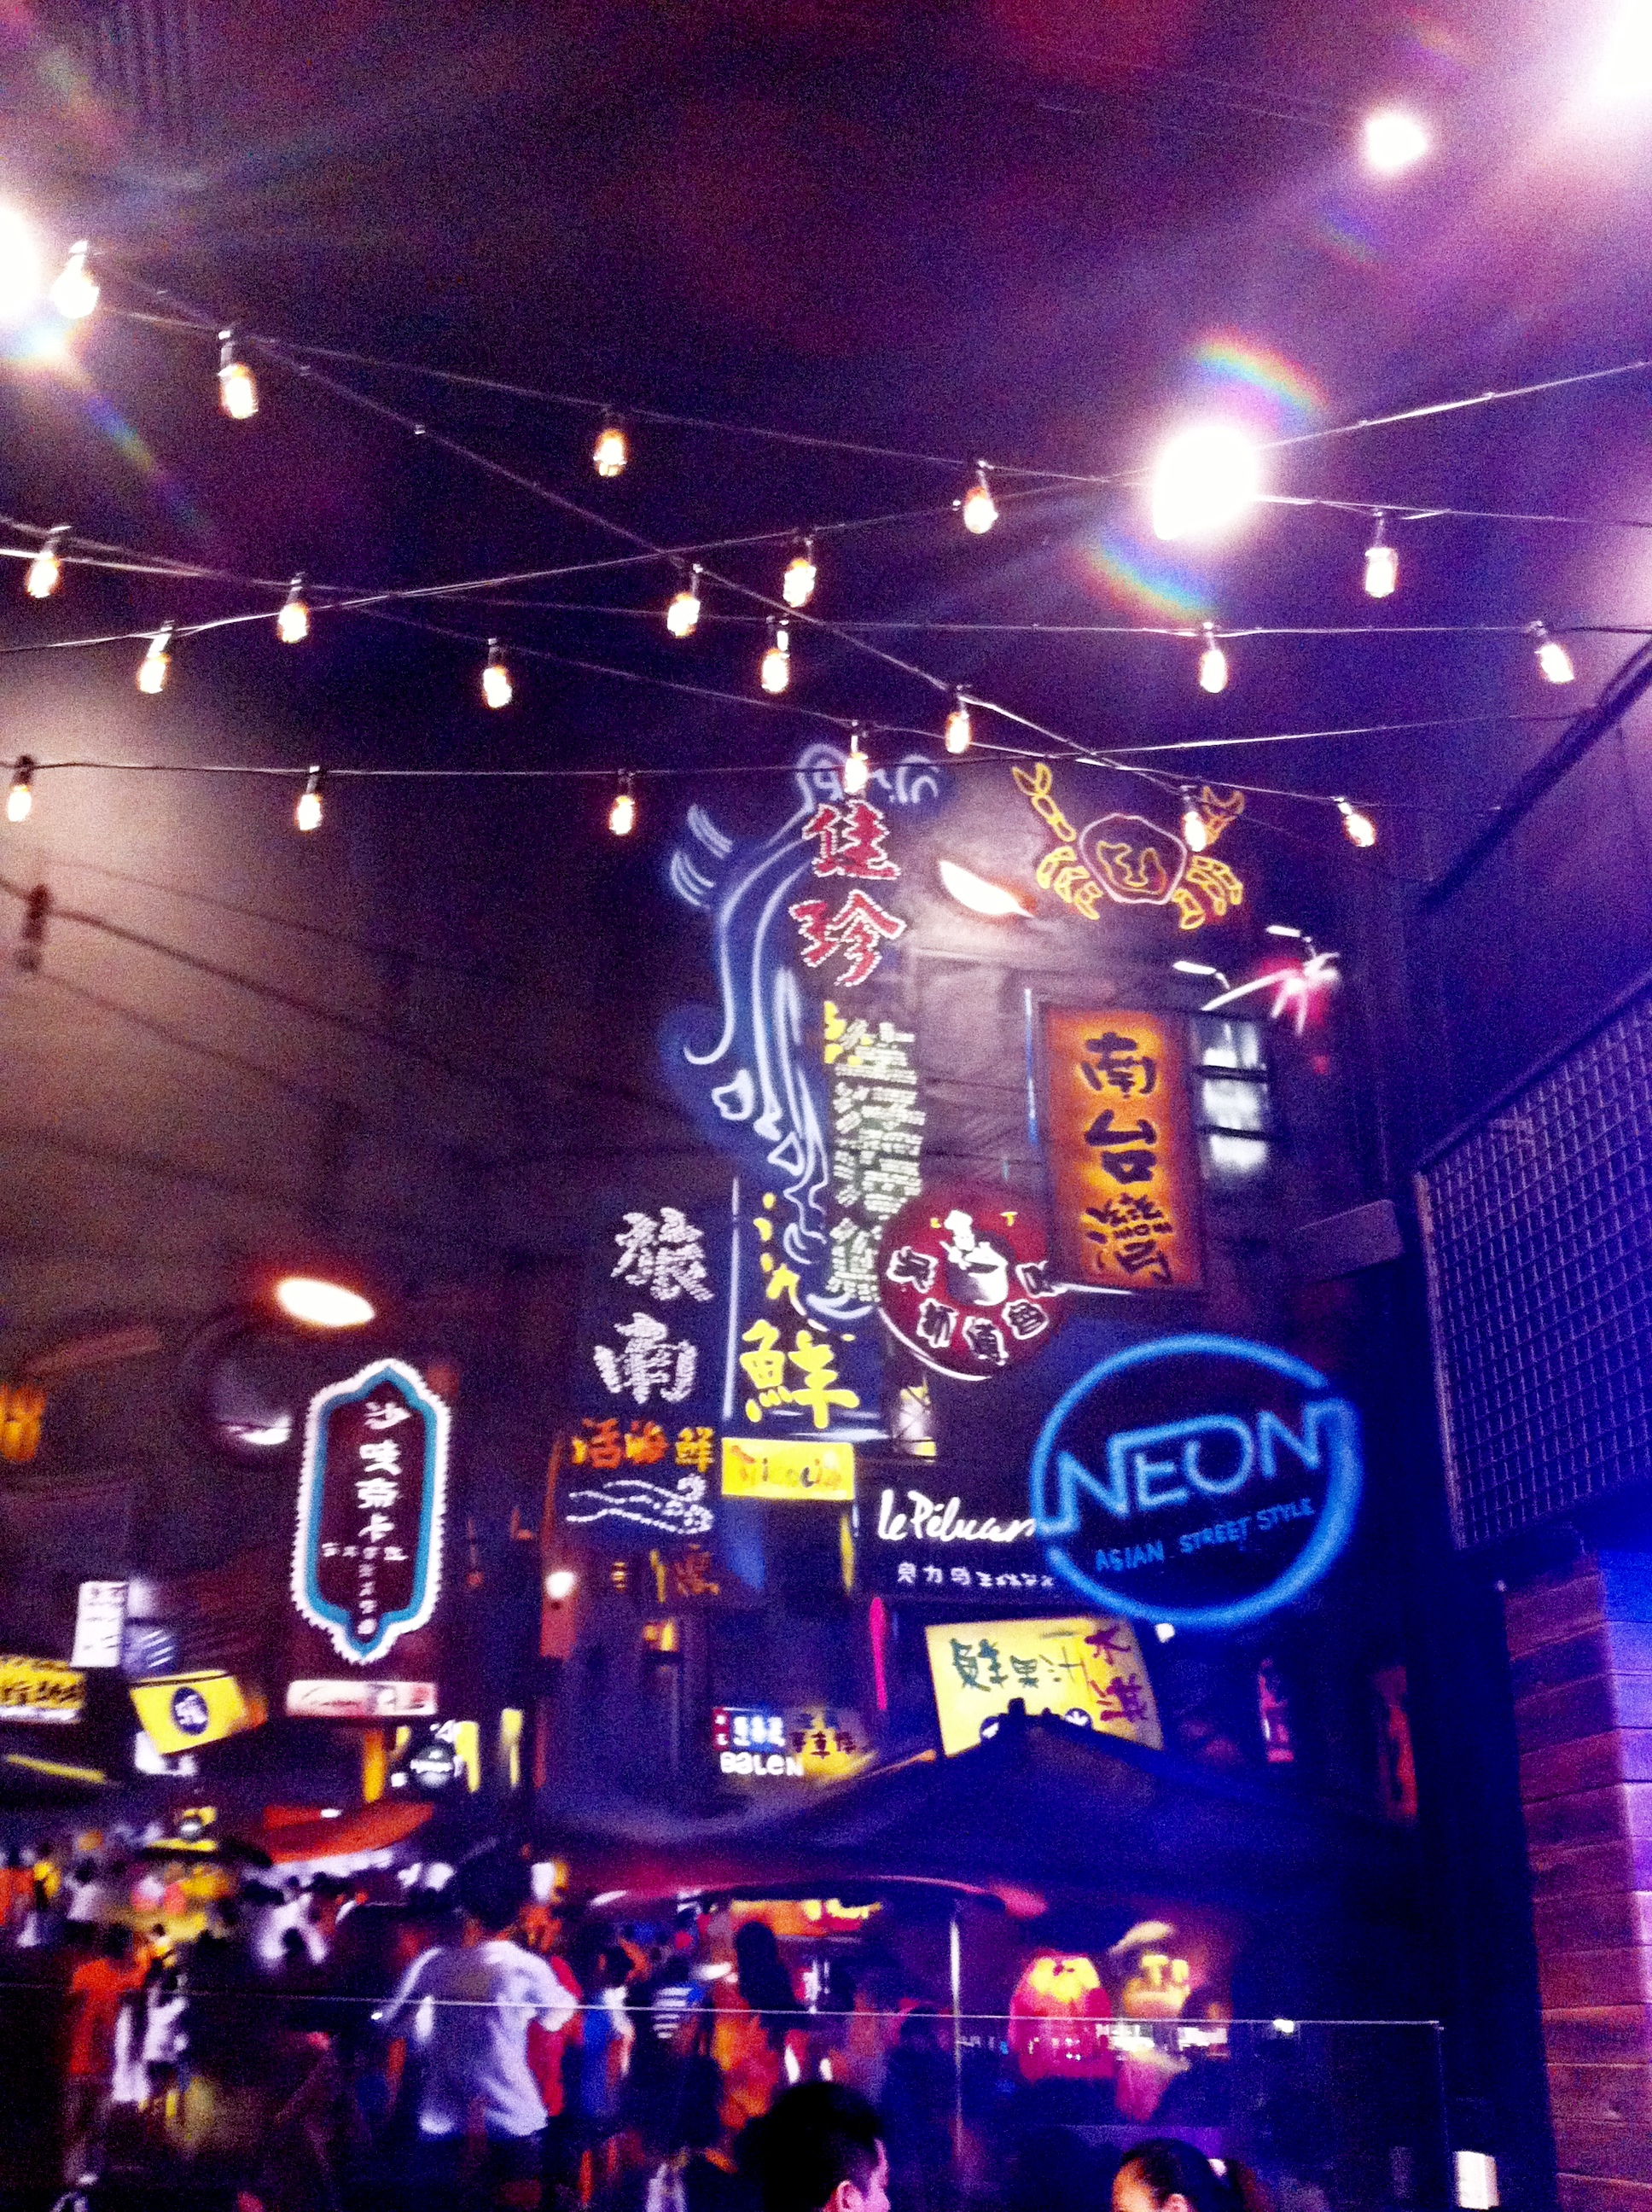 """NEON """"Asian Street Style"""" – Restaurant Review"""